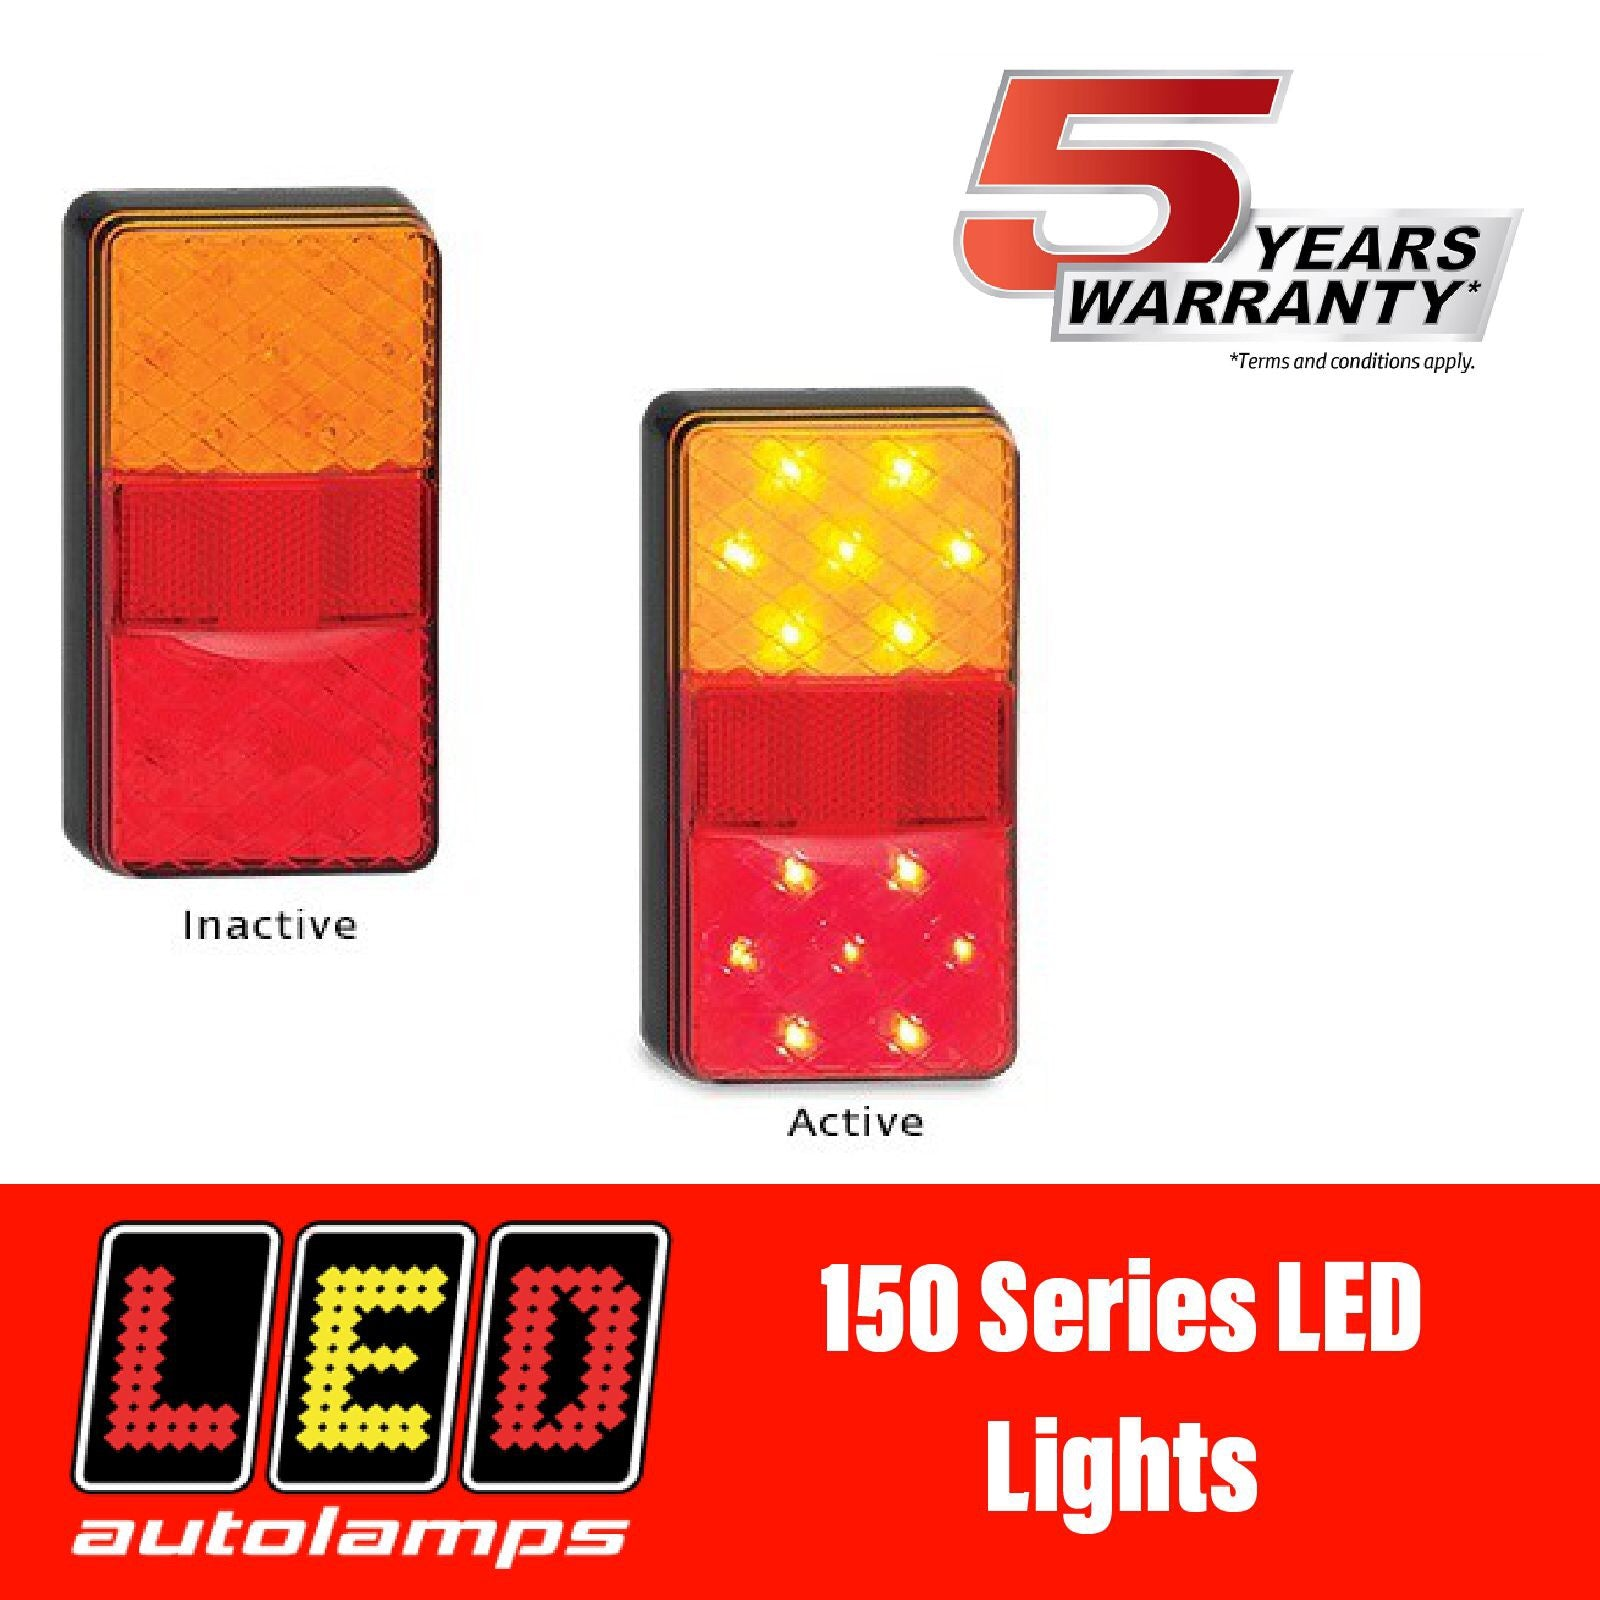 LED AUTOLAMPS 150 Series LED Lights